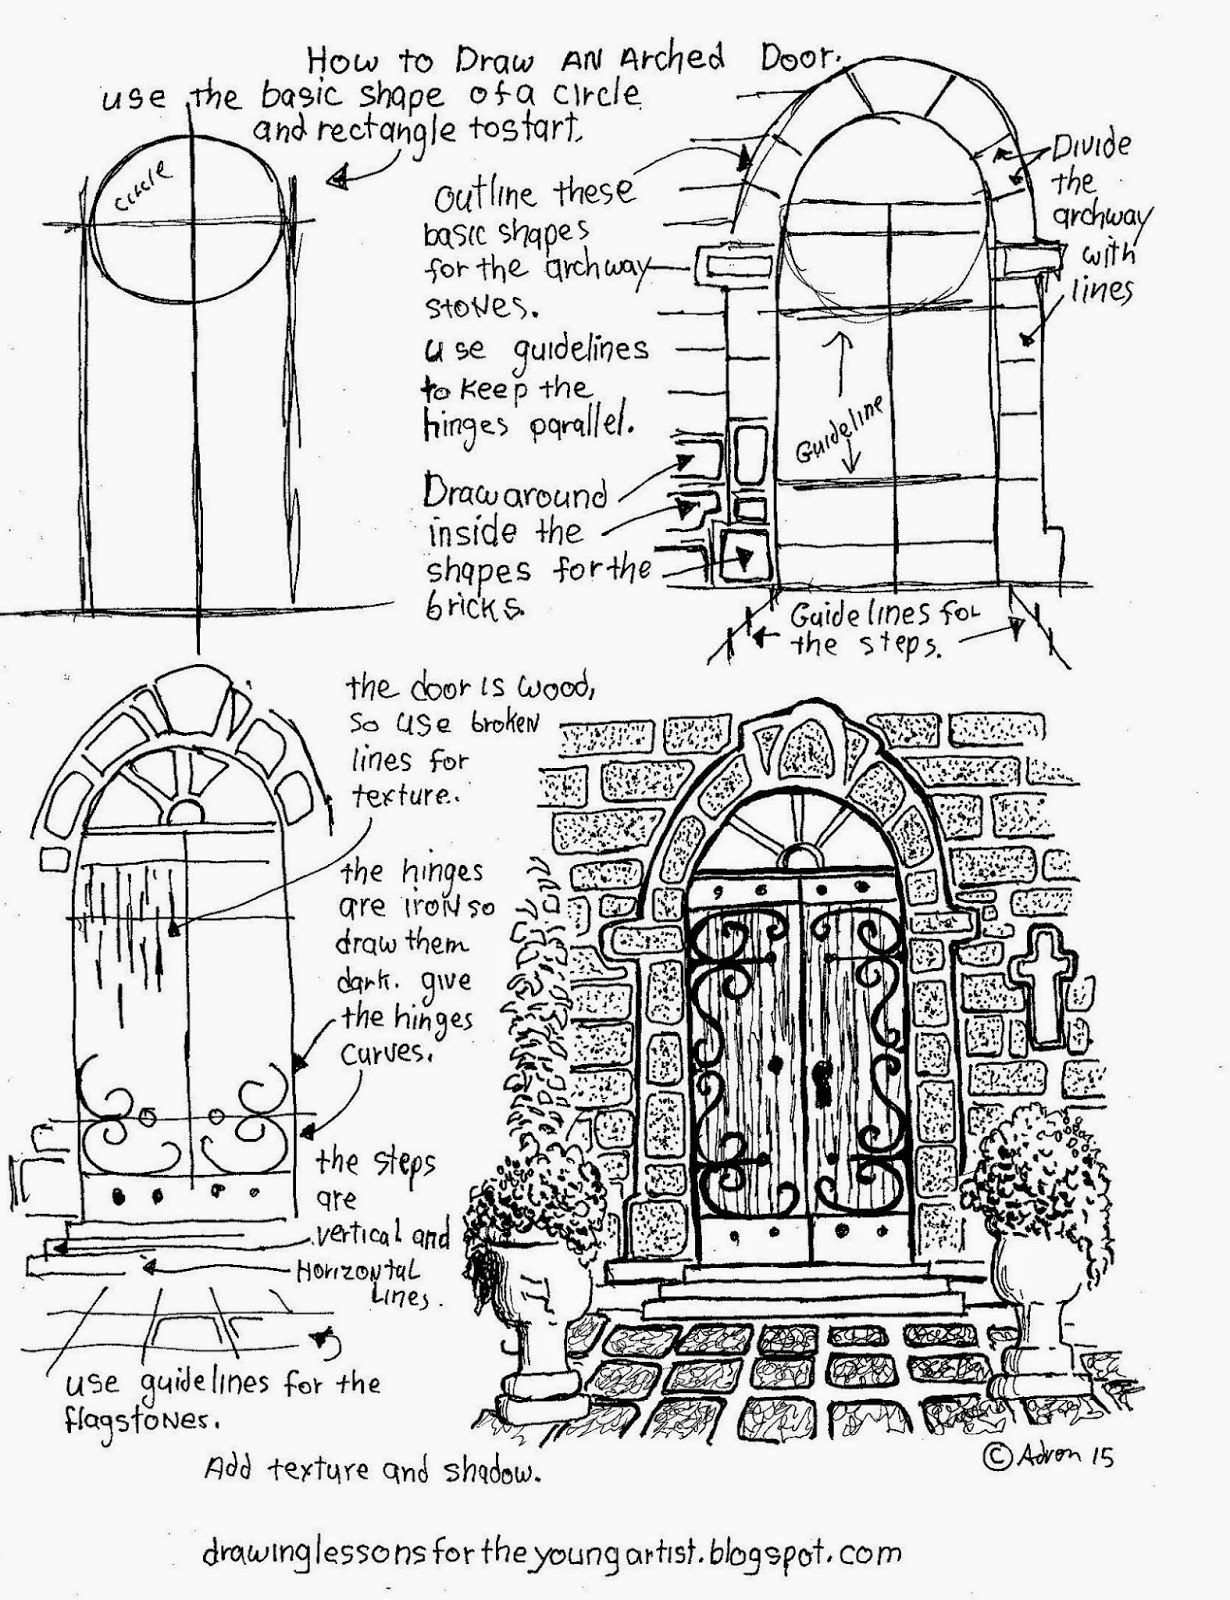 worksheet Drawing Worksheets how to draw an arched door a free printable worksheet worksheets for young artist